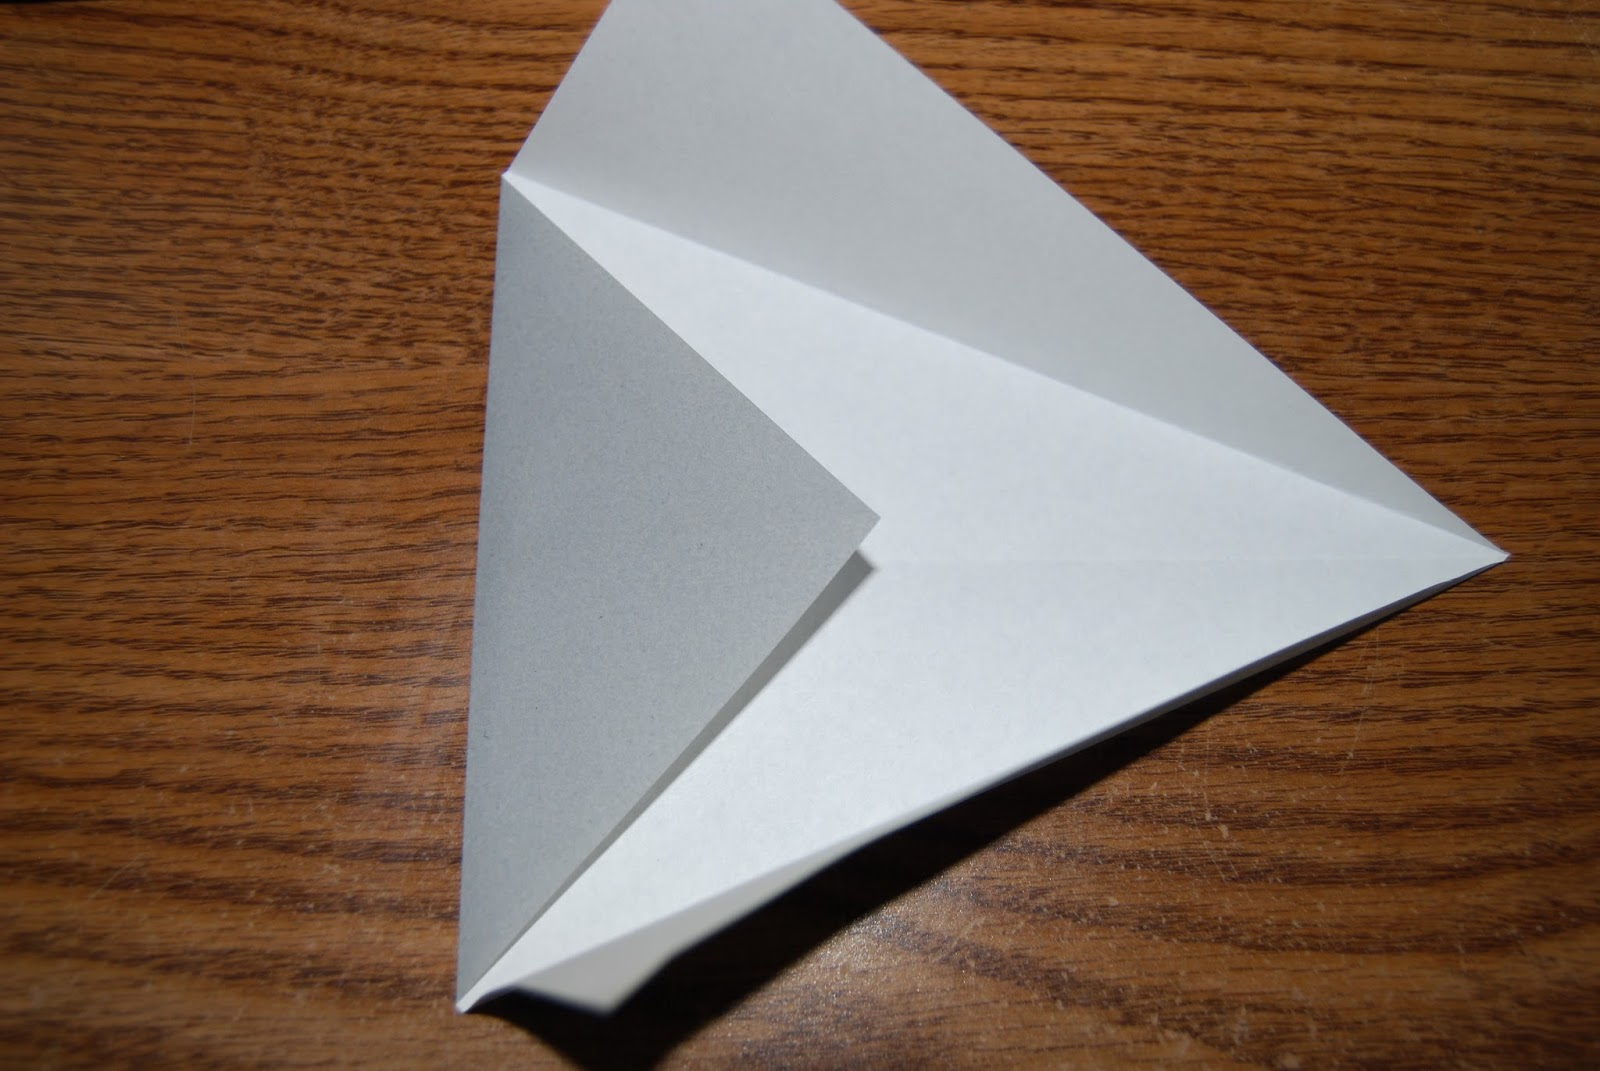 Origami stingray step 4 valley fold the left point back down at the same angle and then fold the other two flaps back down on top of it jeuxipadfo Image collections